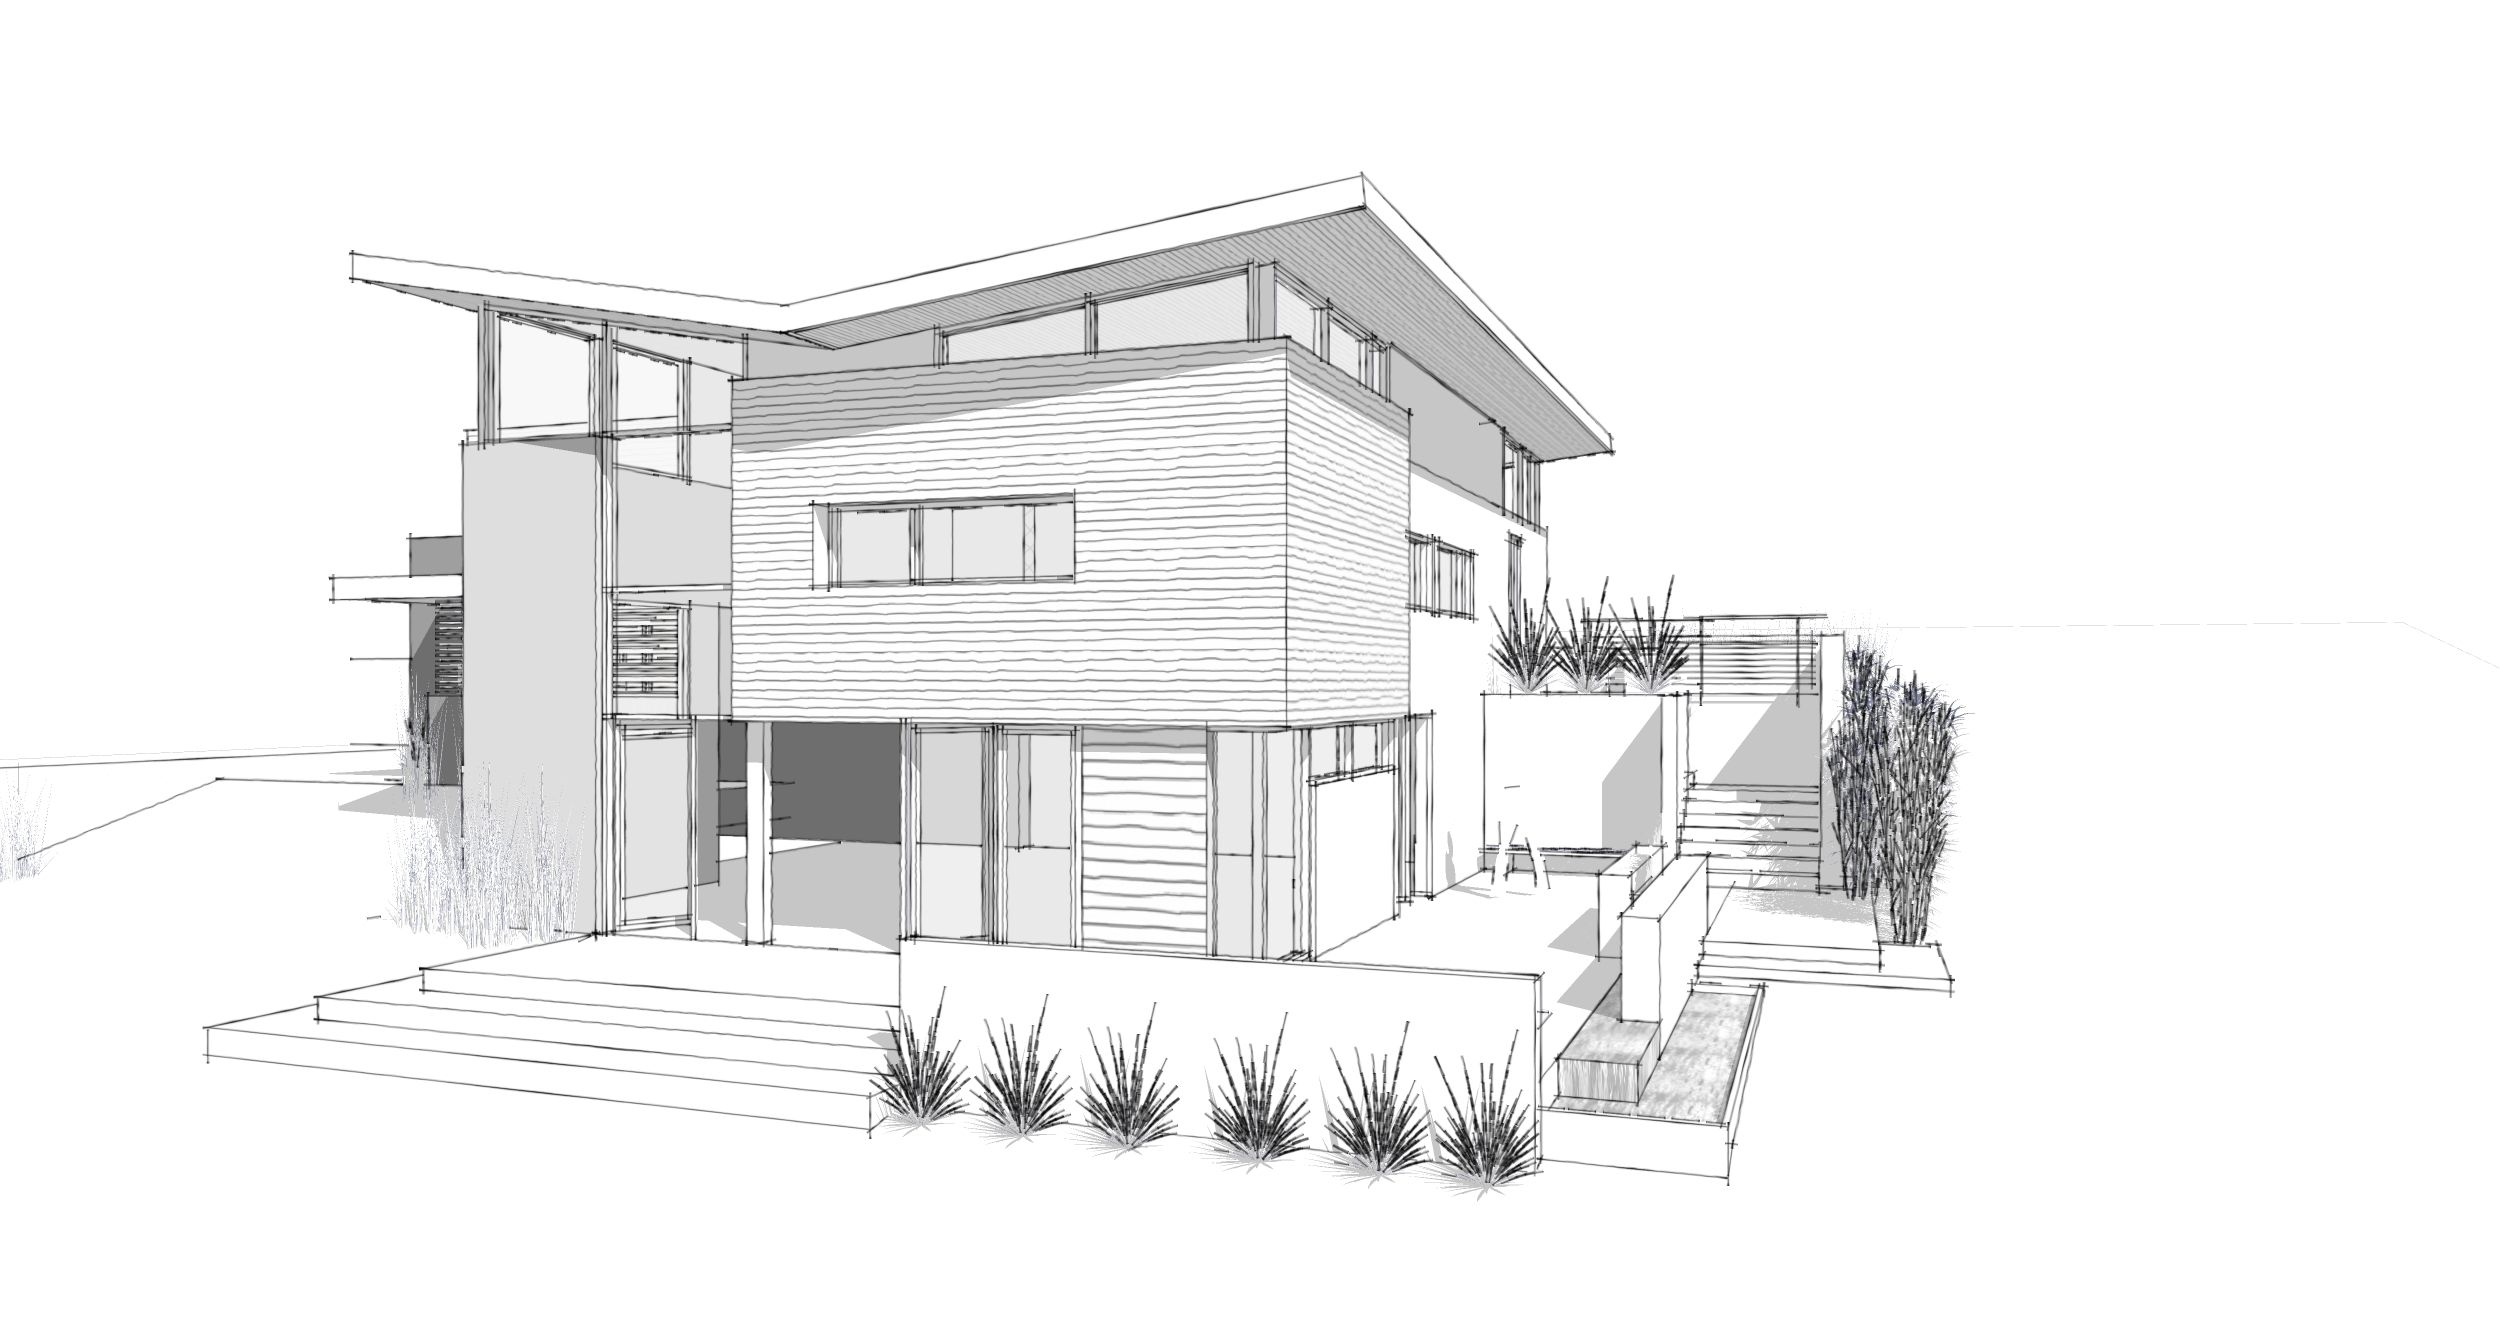 Pin By Alex Avila On Sketchup Drawings Dream House Drawing